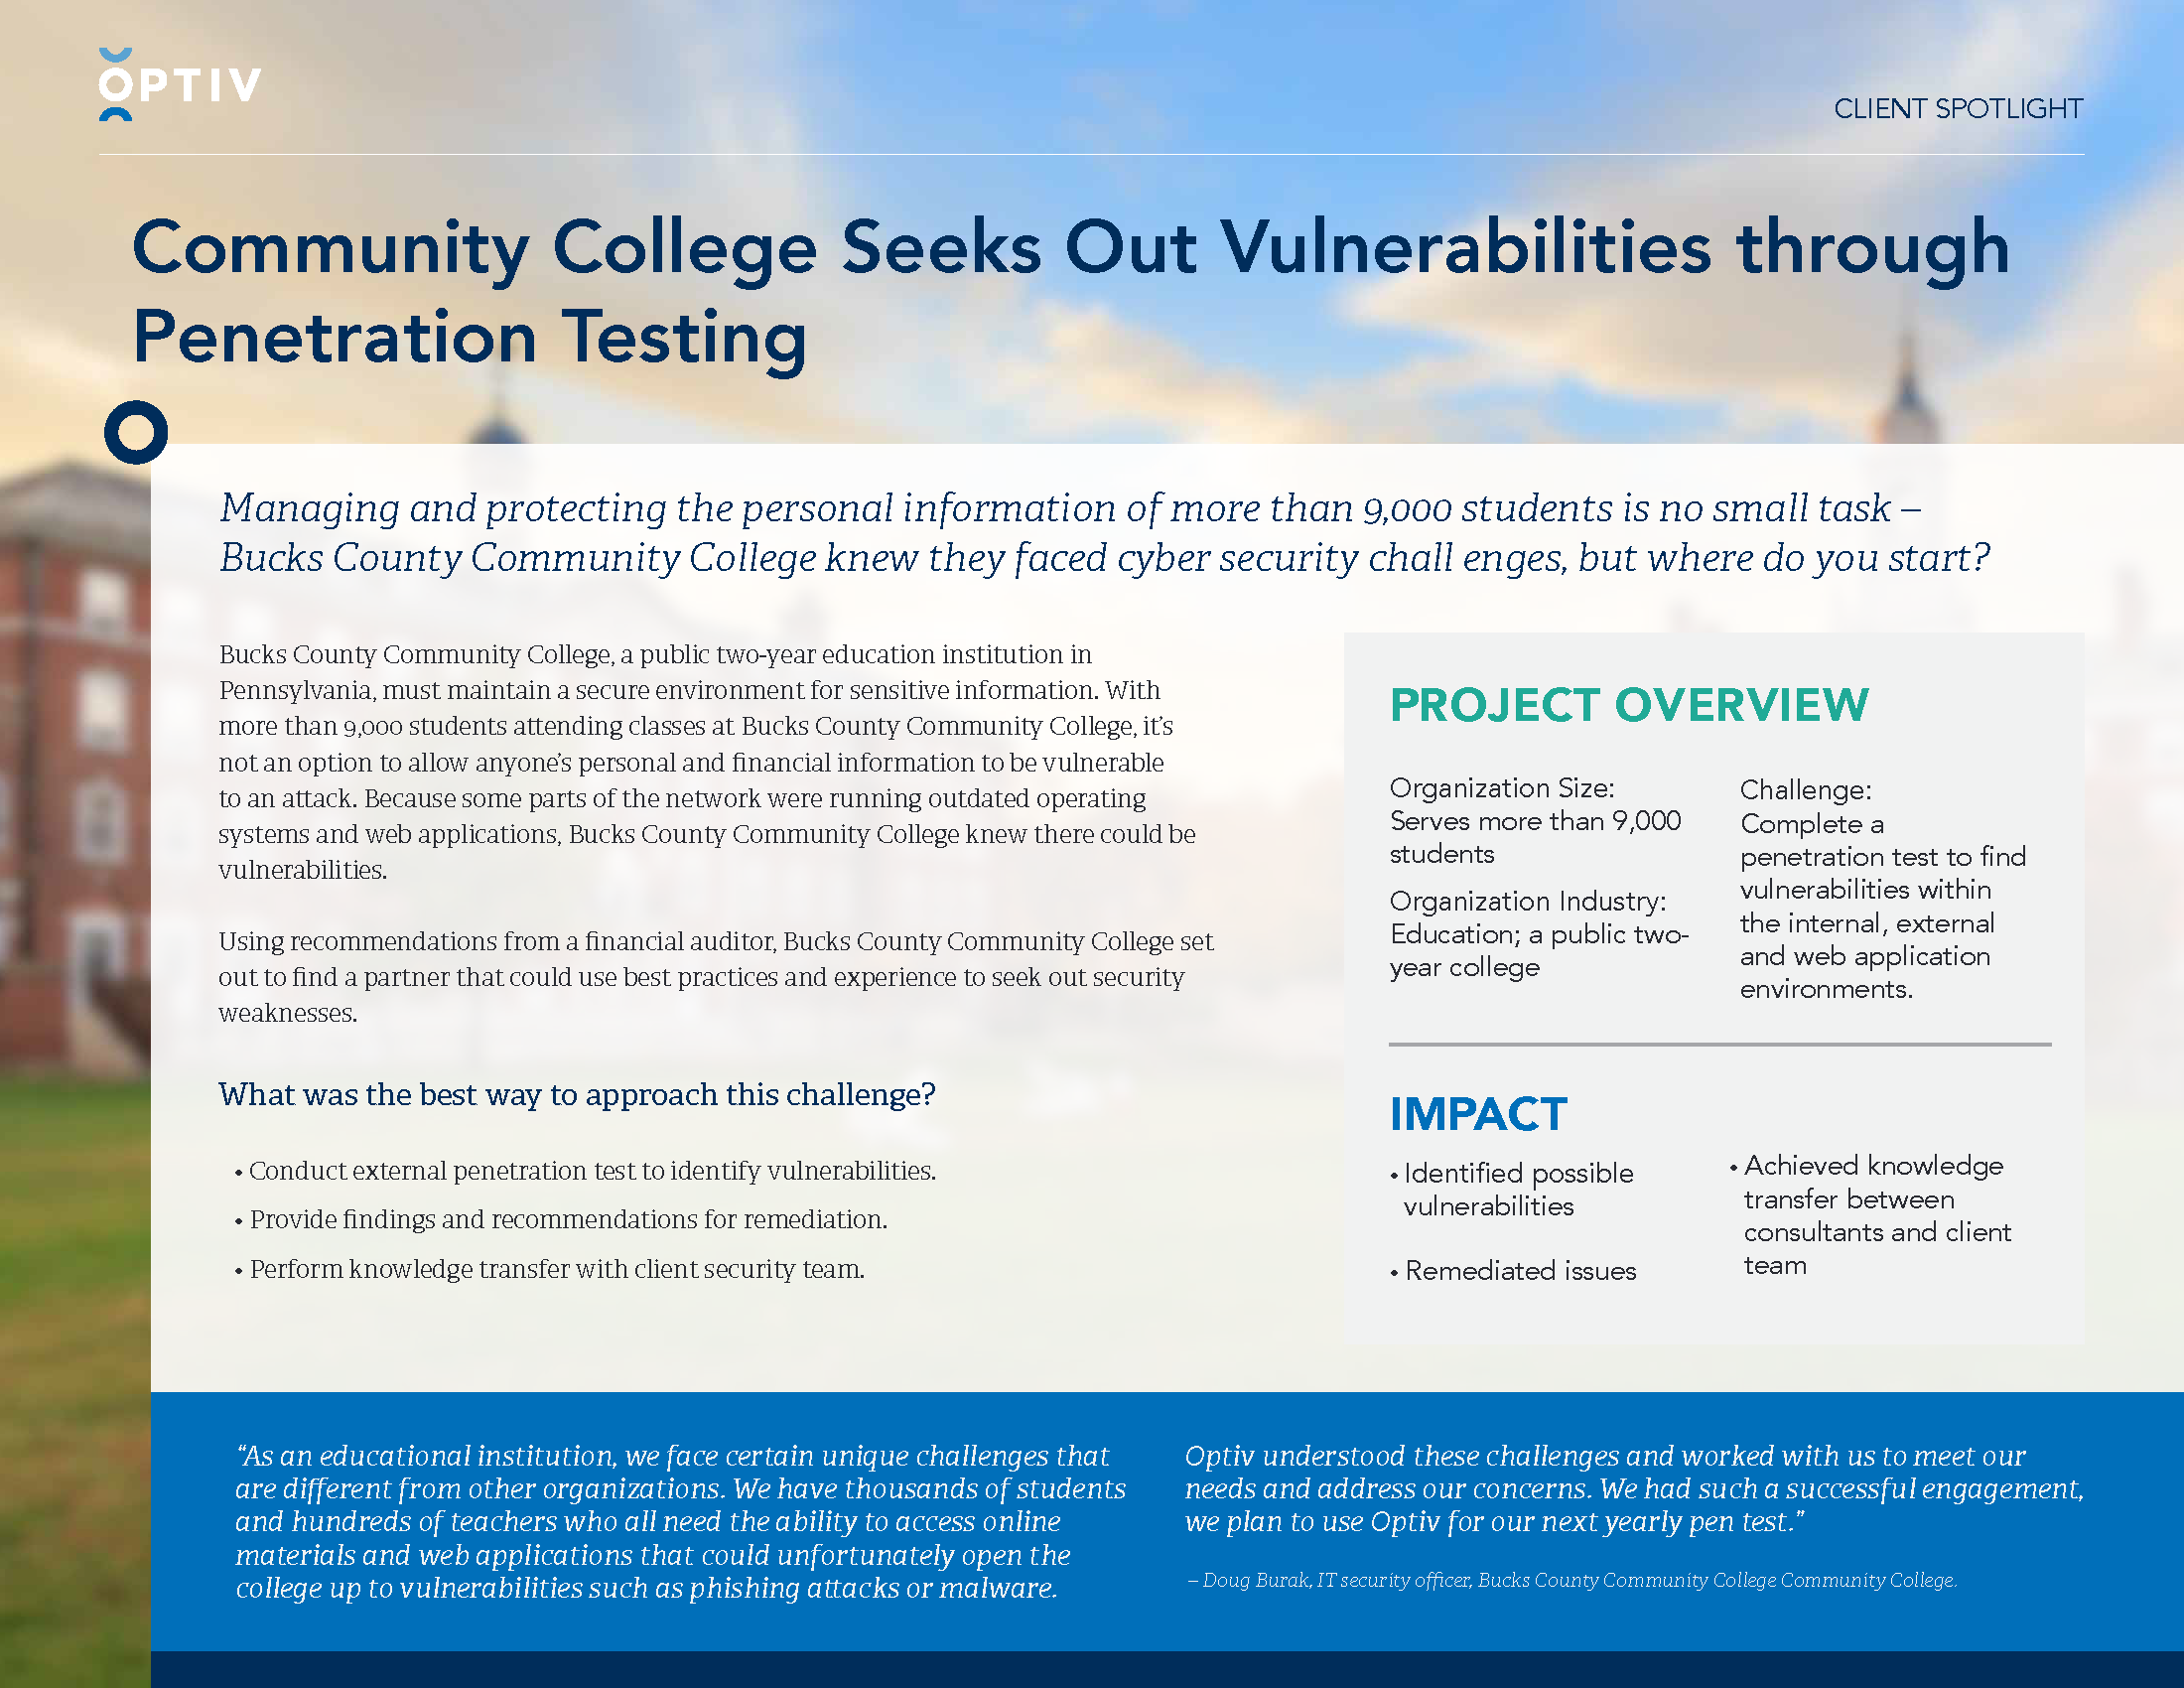 Community College Seeks Out Vulnerabilities through Penetration Testing